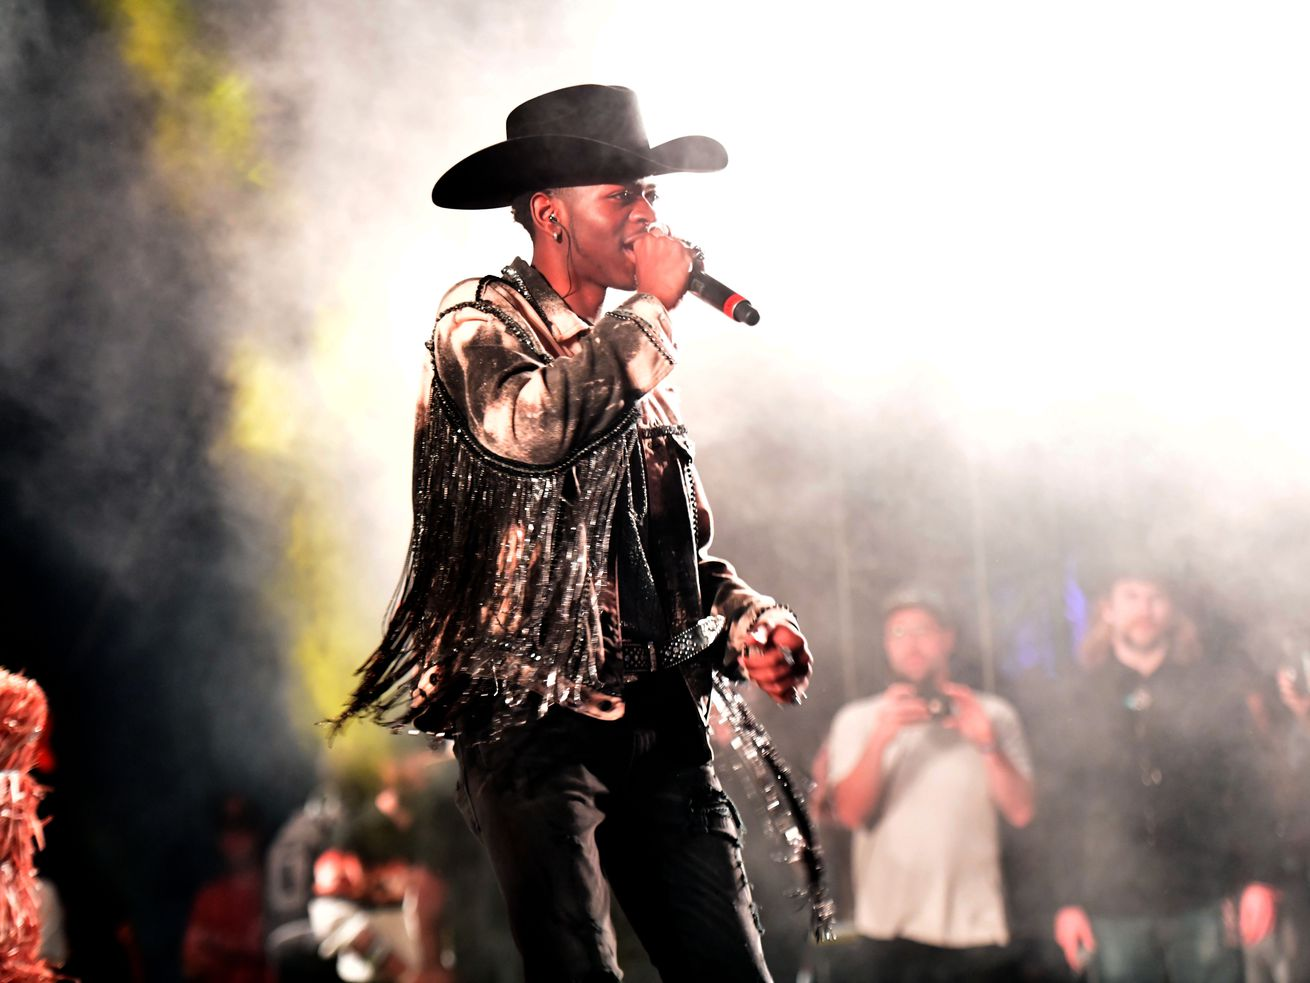 Singer Lil Nas X performs onstage during the Stagecoach Music Festival on April 28, 2019, in Indio, California.